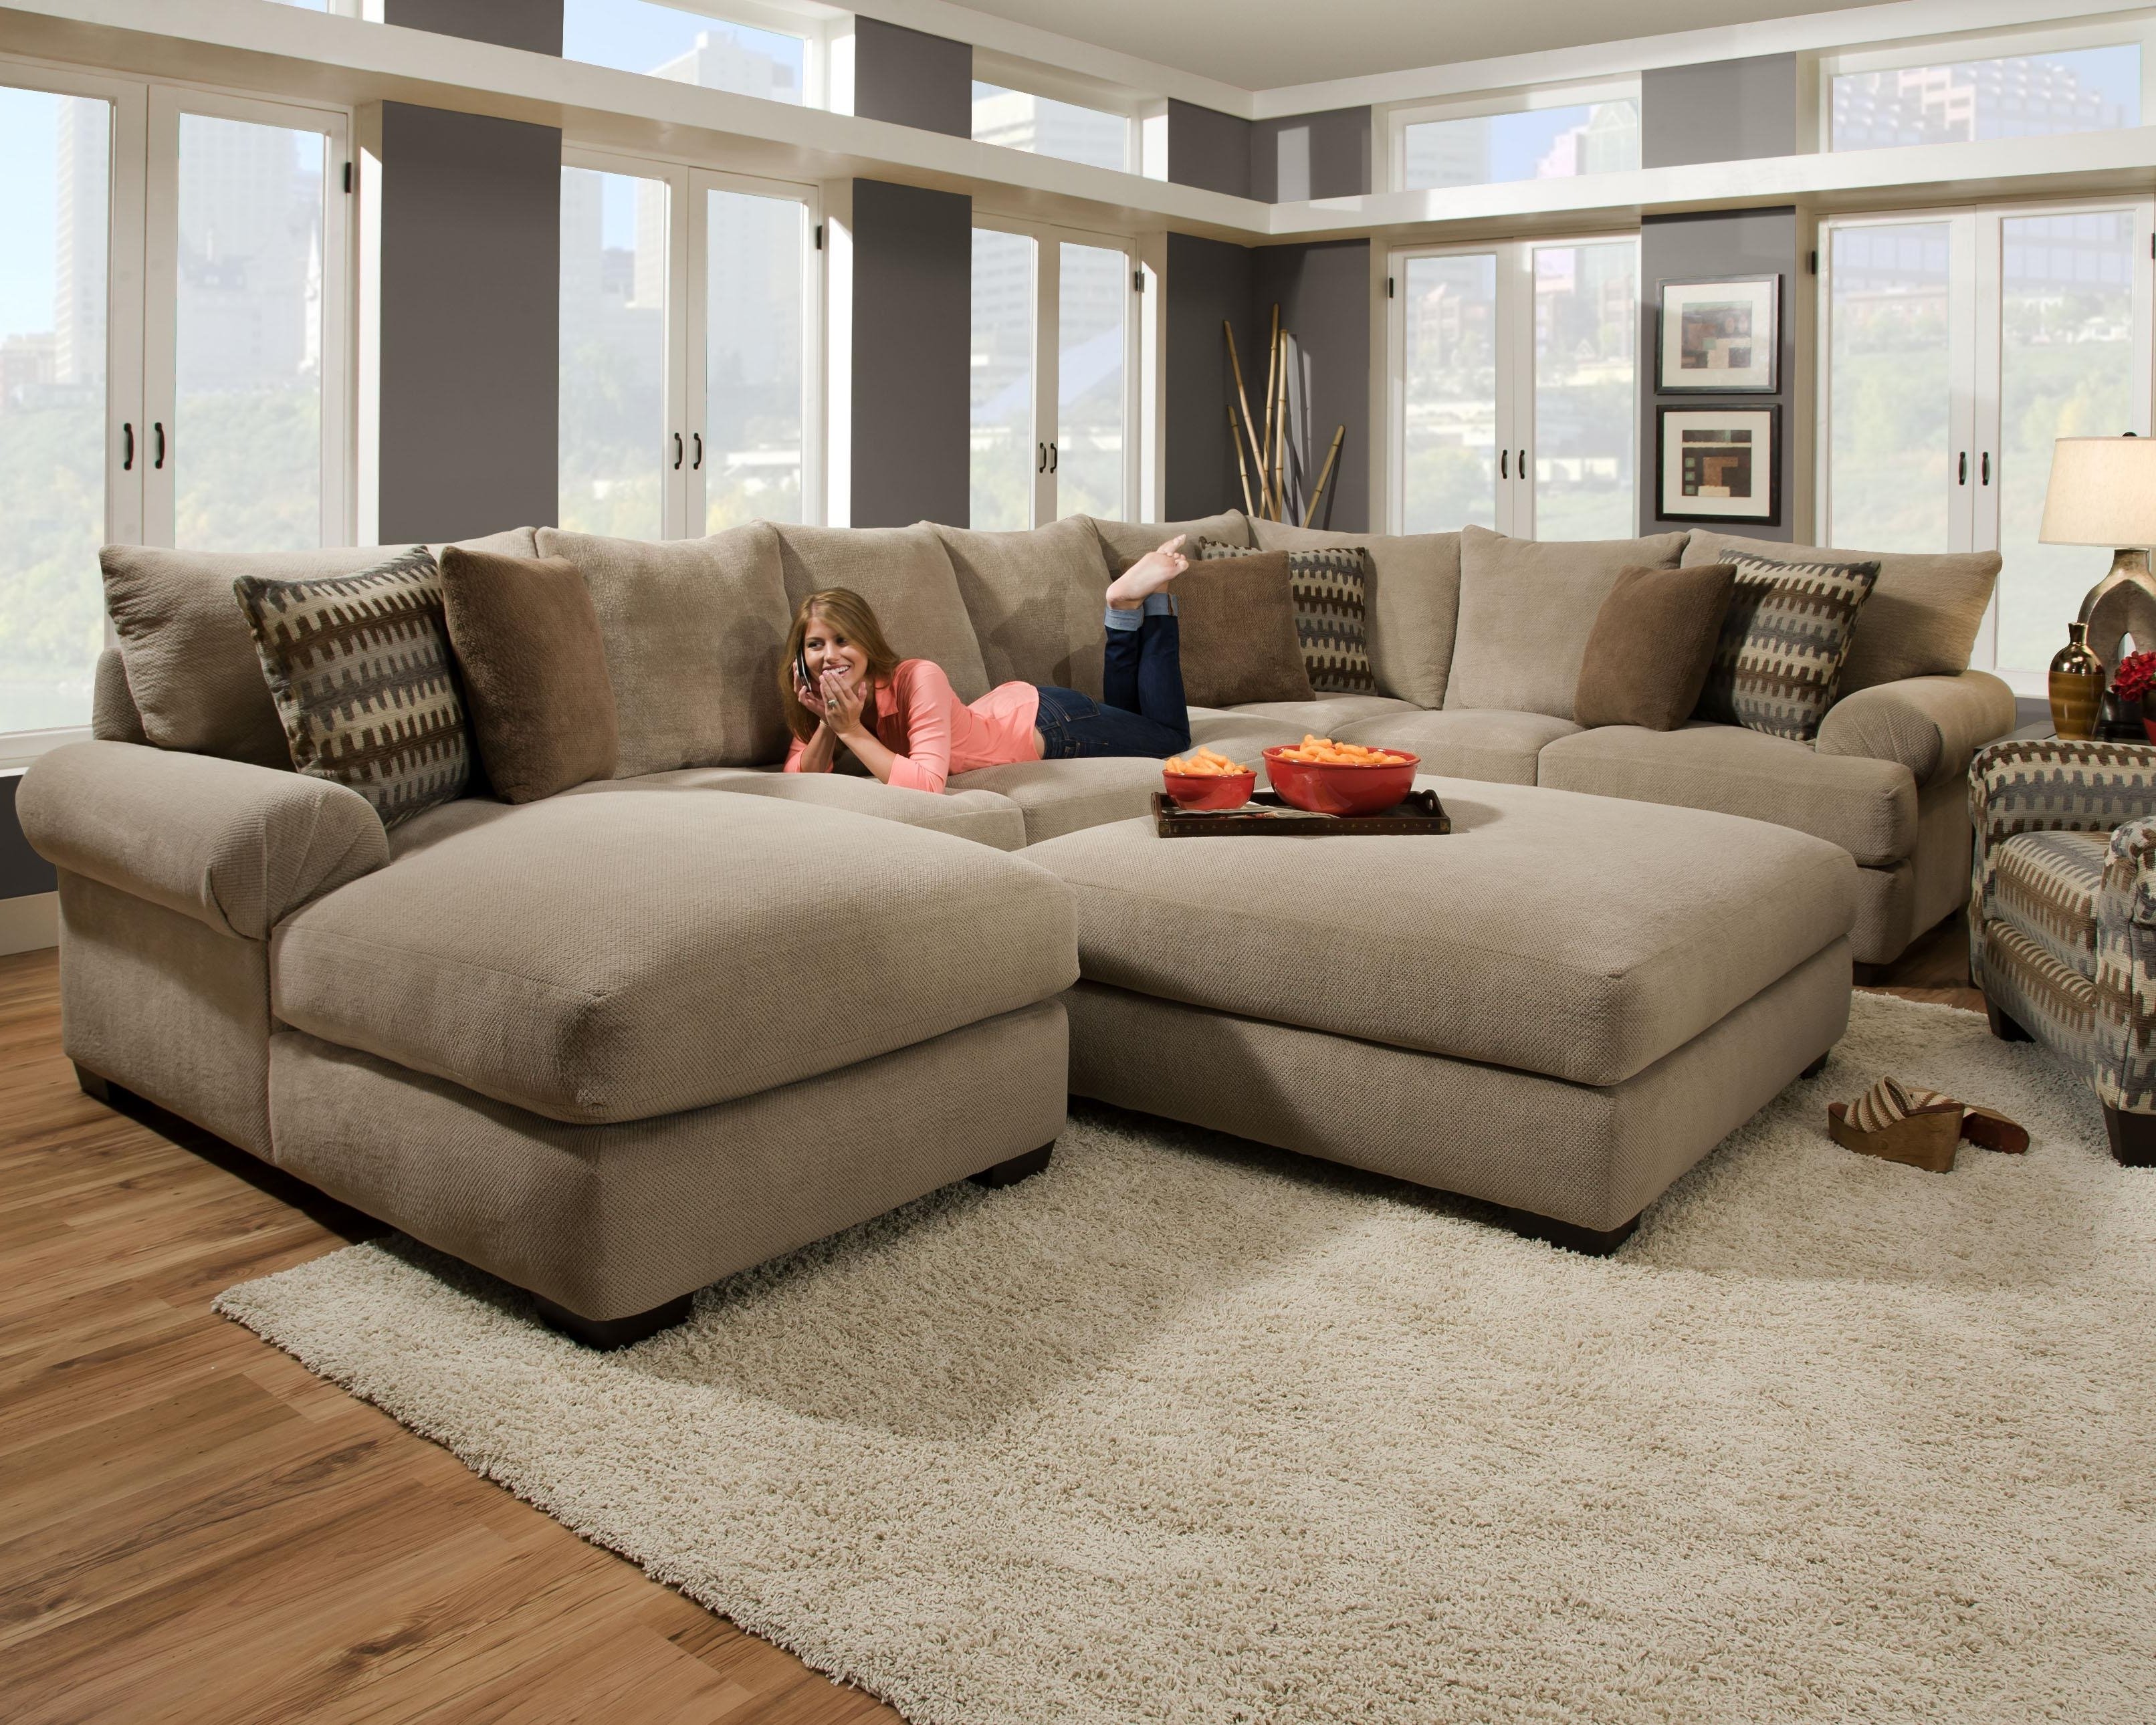 2018 Wide Sectional Sofas Intended For Corinthian 61a0 Sectional Sofa With Right Side Chaise (View 8 of 20)